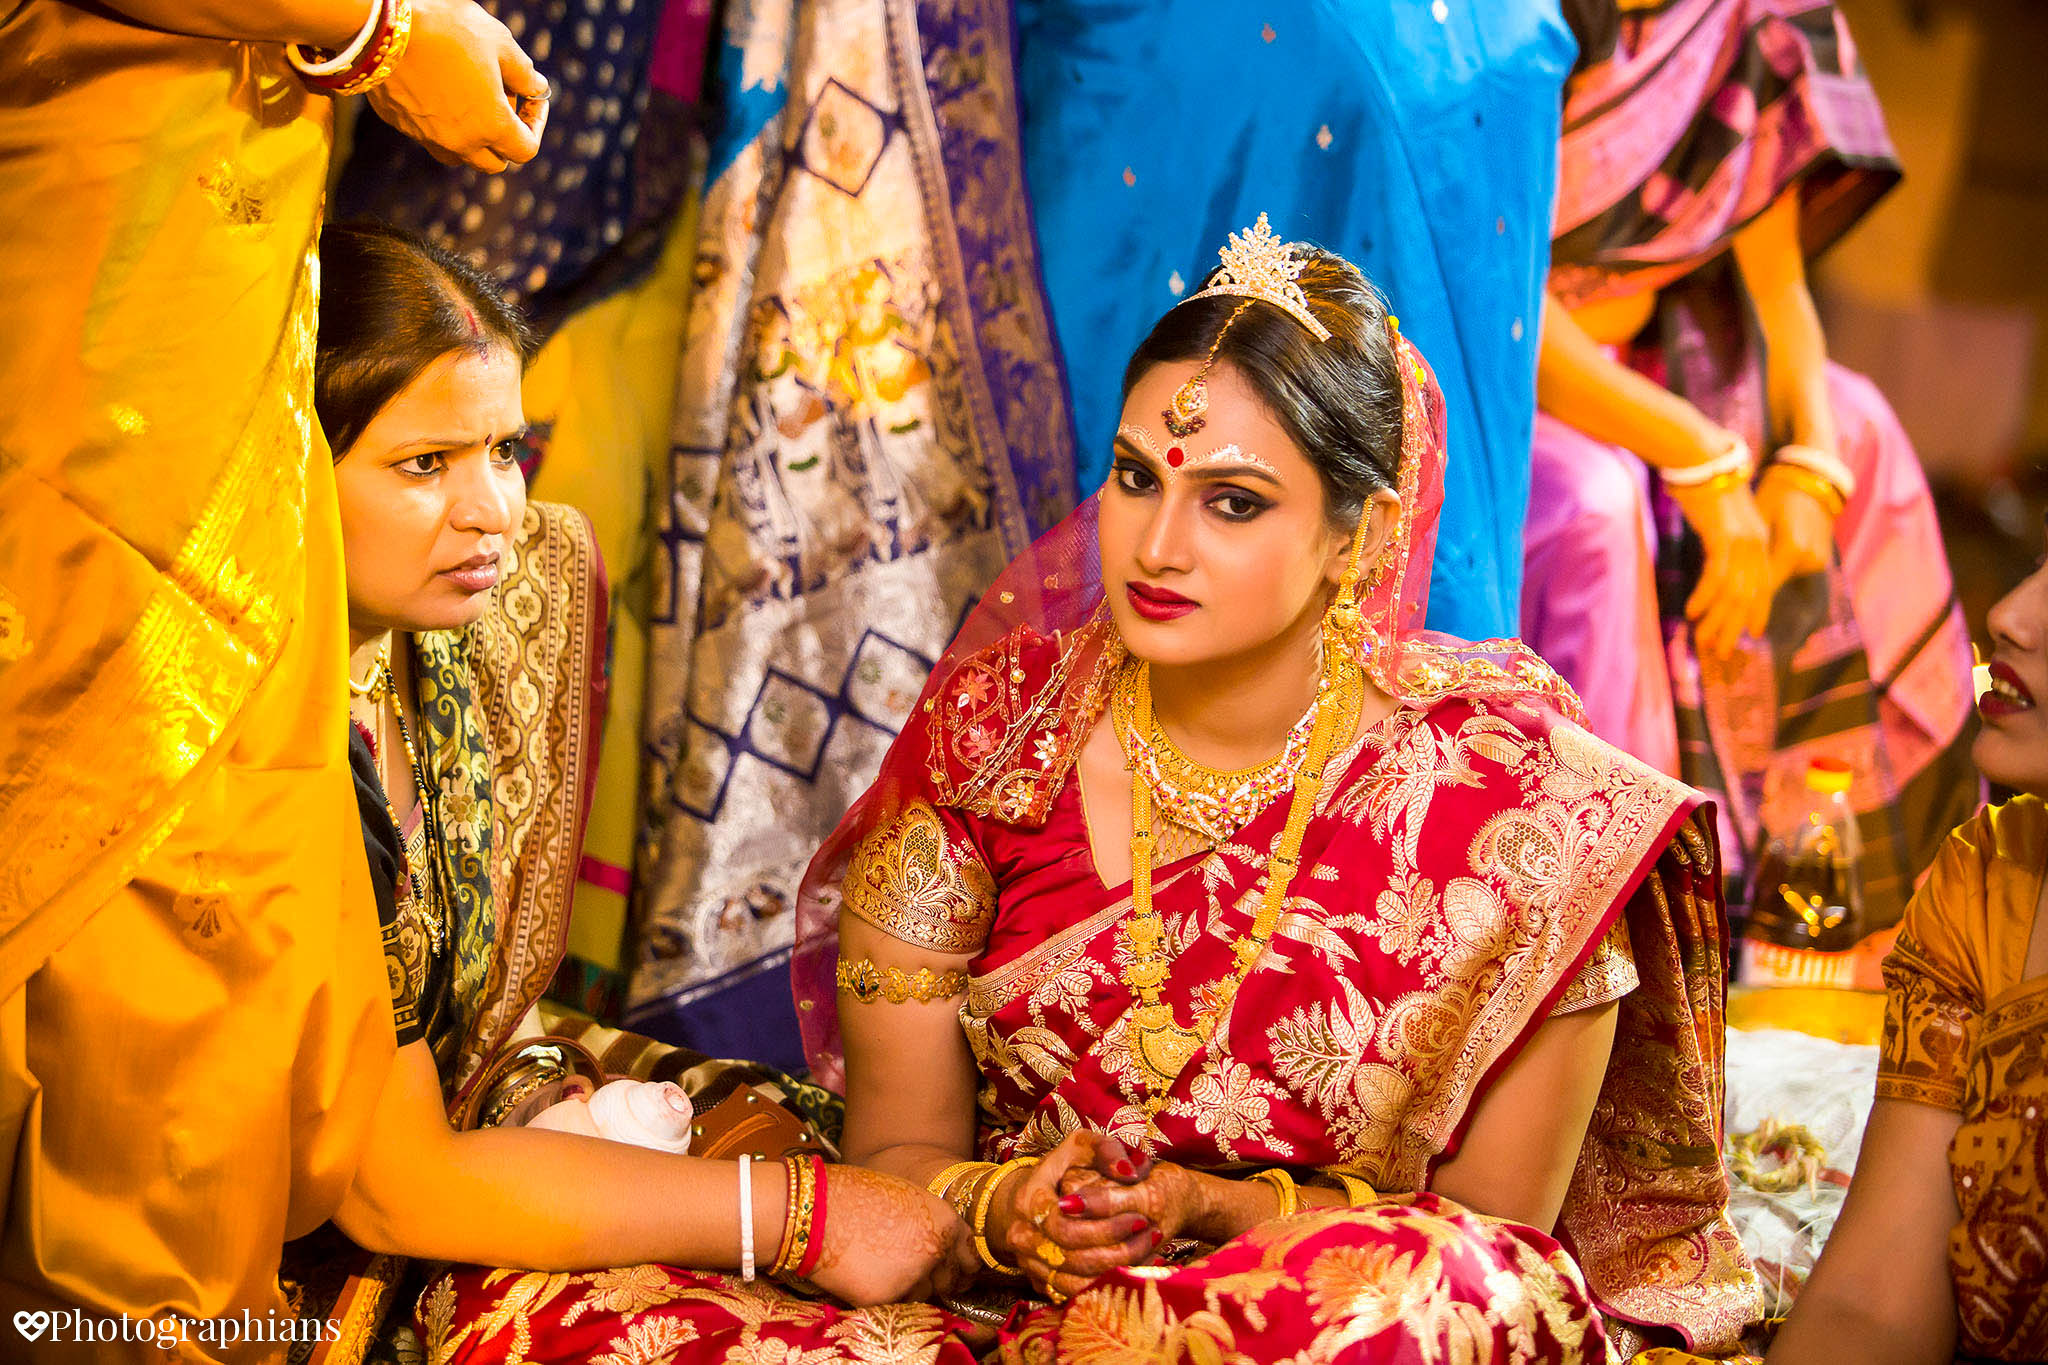 Photographians_Indian_Wedding_Durgapur_032